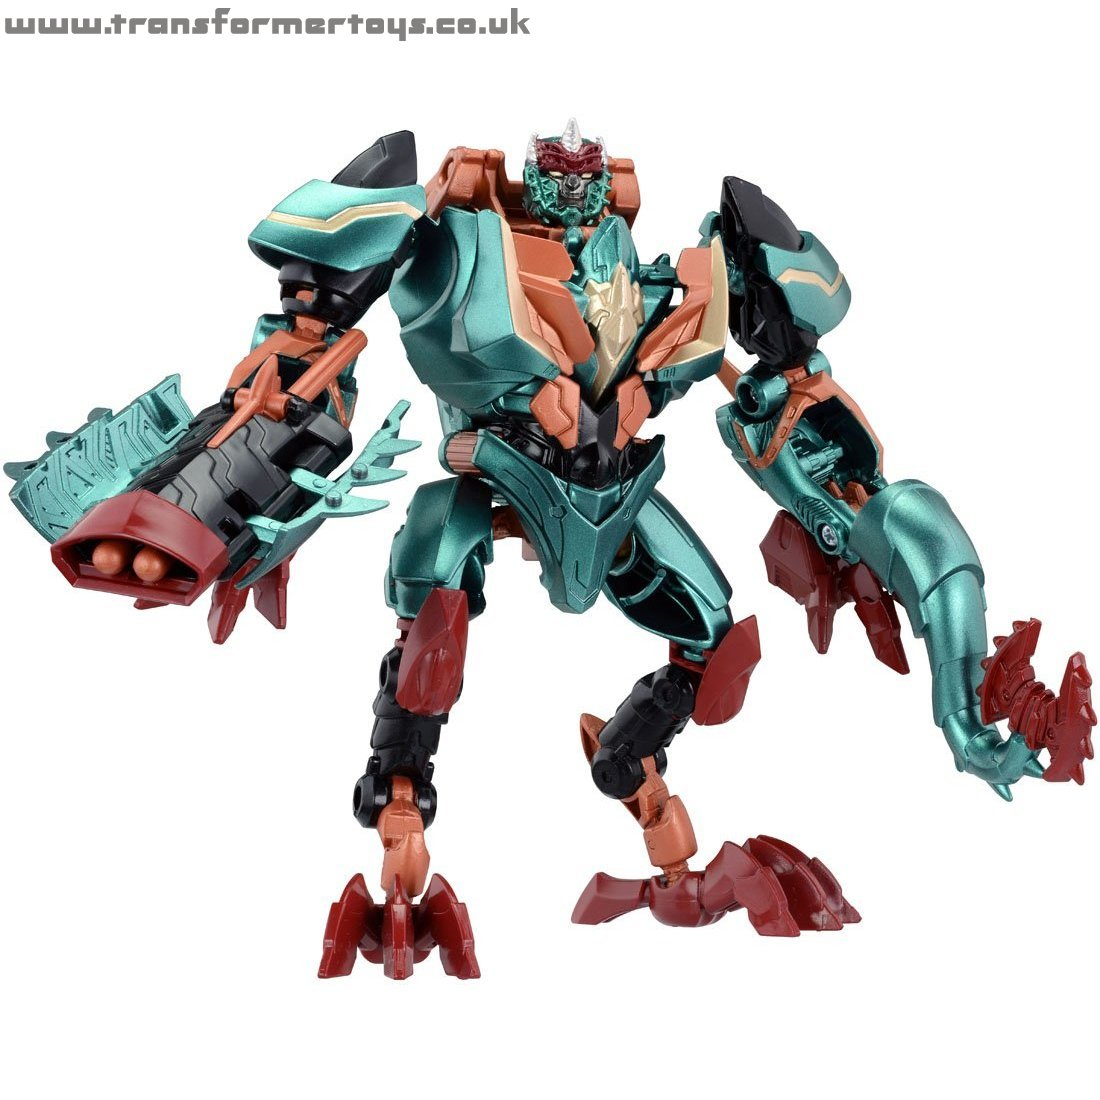 Japanese Transformers Toys : Transformers toy news and rumours